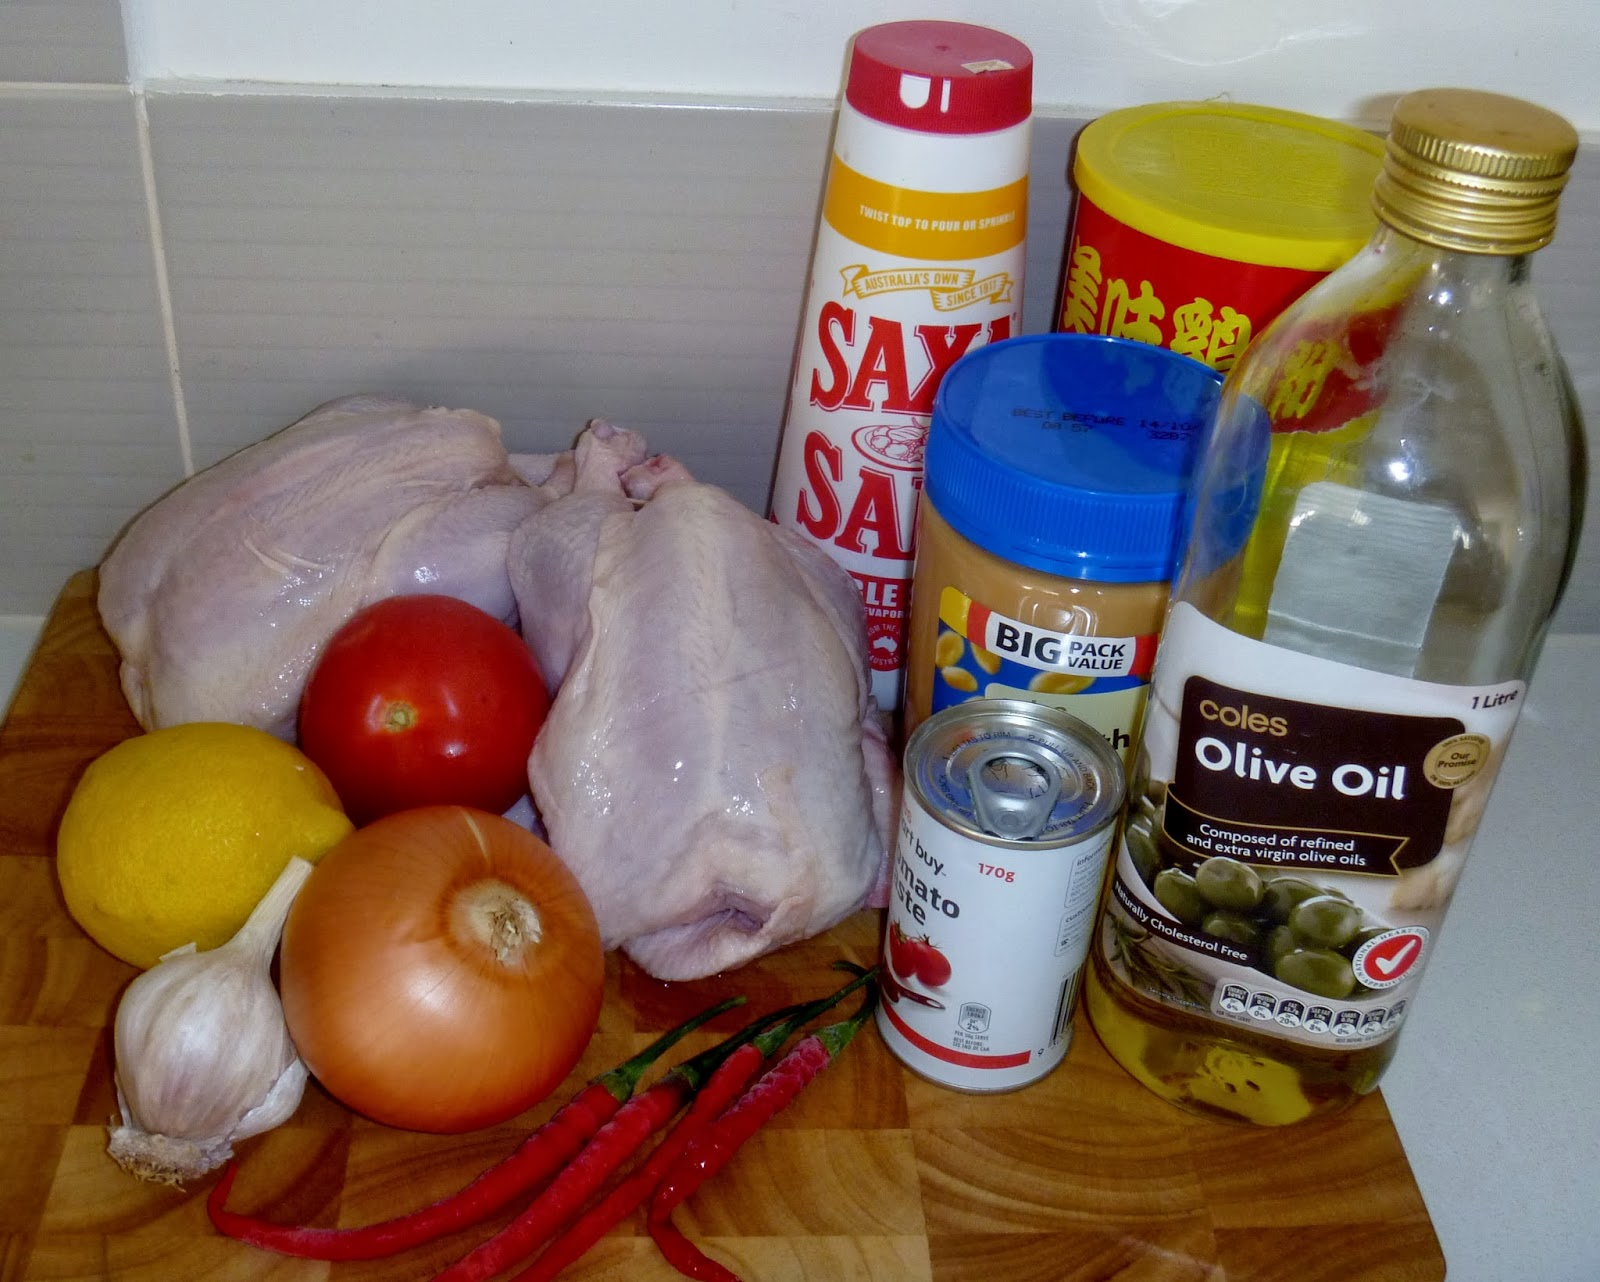 Pepper chicken sierra leonean recipe the cooking wardrobe 2 small sized whole chicken 4 tbs olive oil 3 tbs peanut butter 2 tbs tomato paste 1 medium fresh tomato 1 brown onion 1 lemon 4 cloves garlic forumfinder Image collections